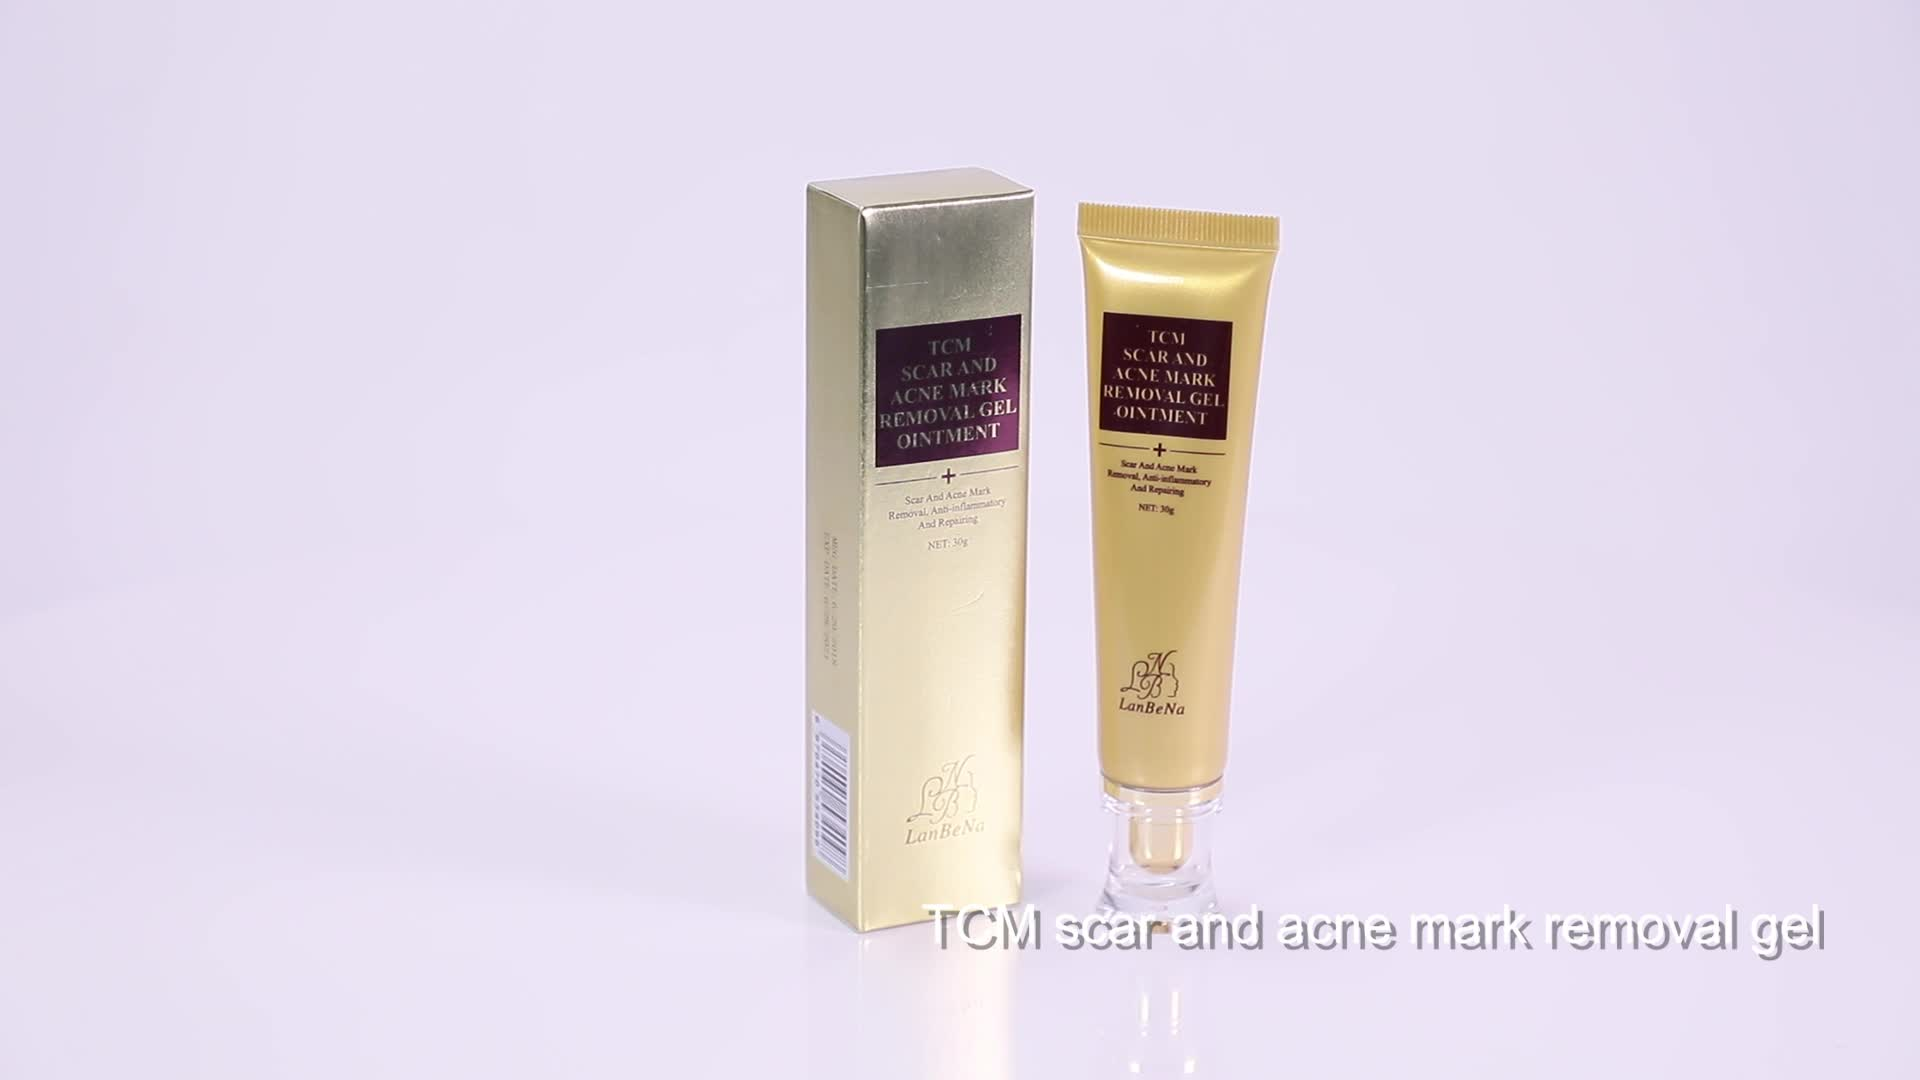 LANBENA TCM acne and scar remover gel for face skin care